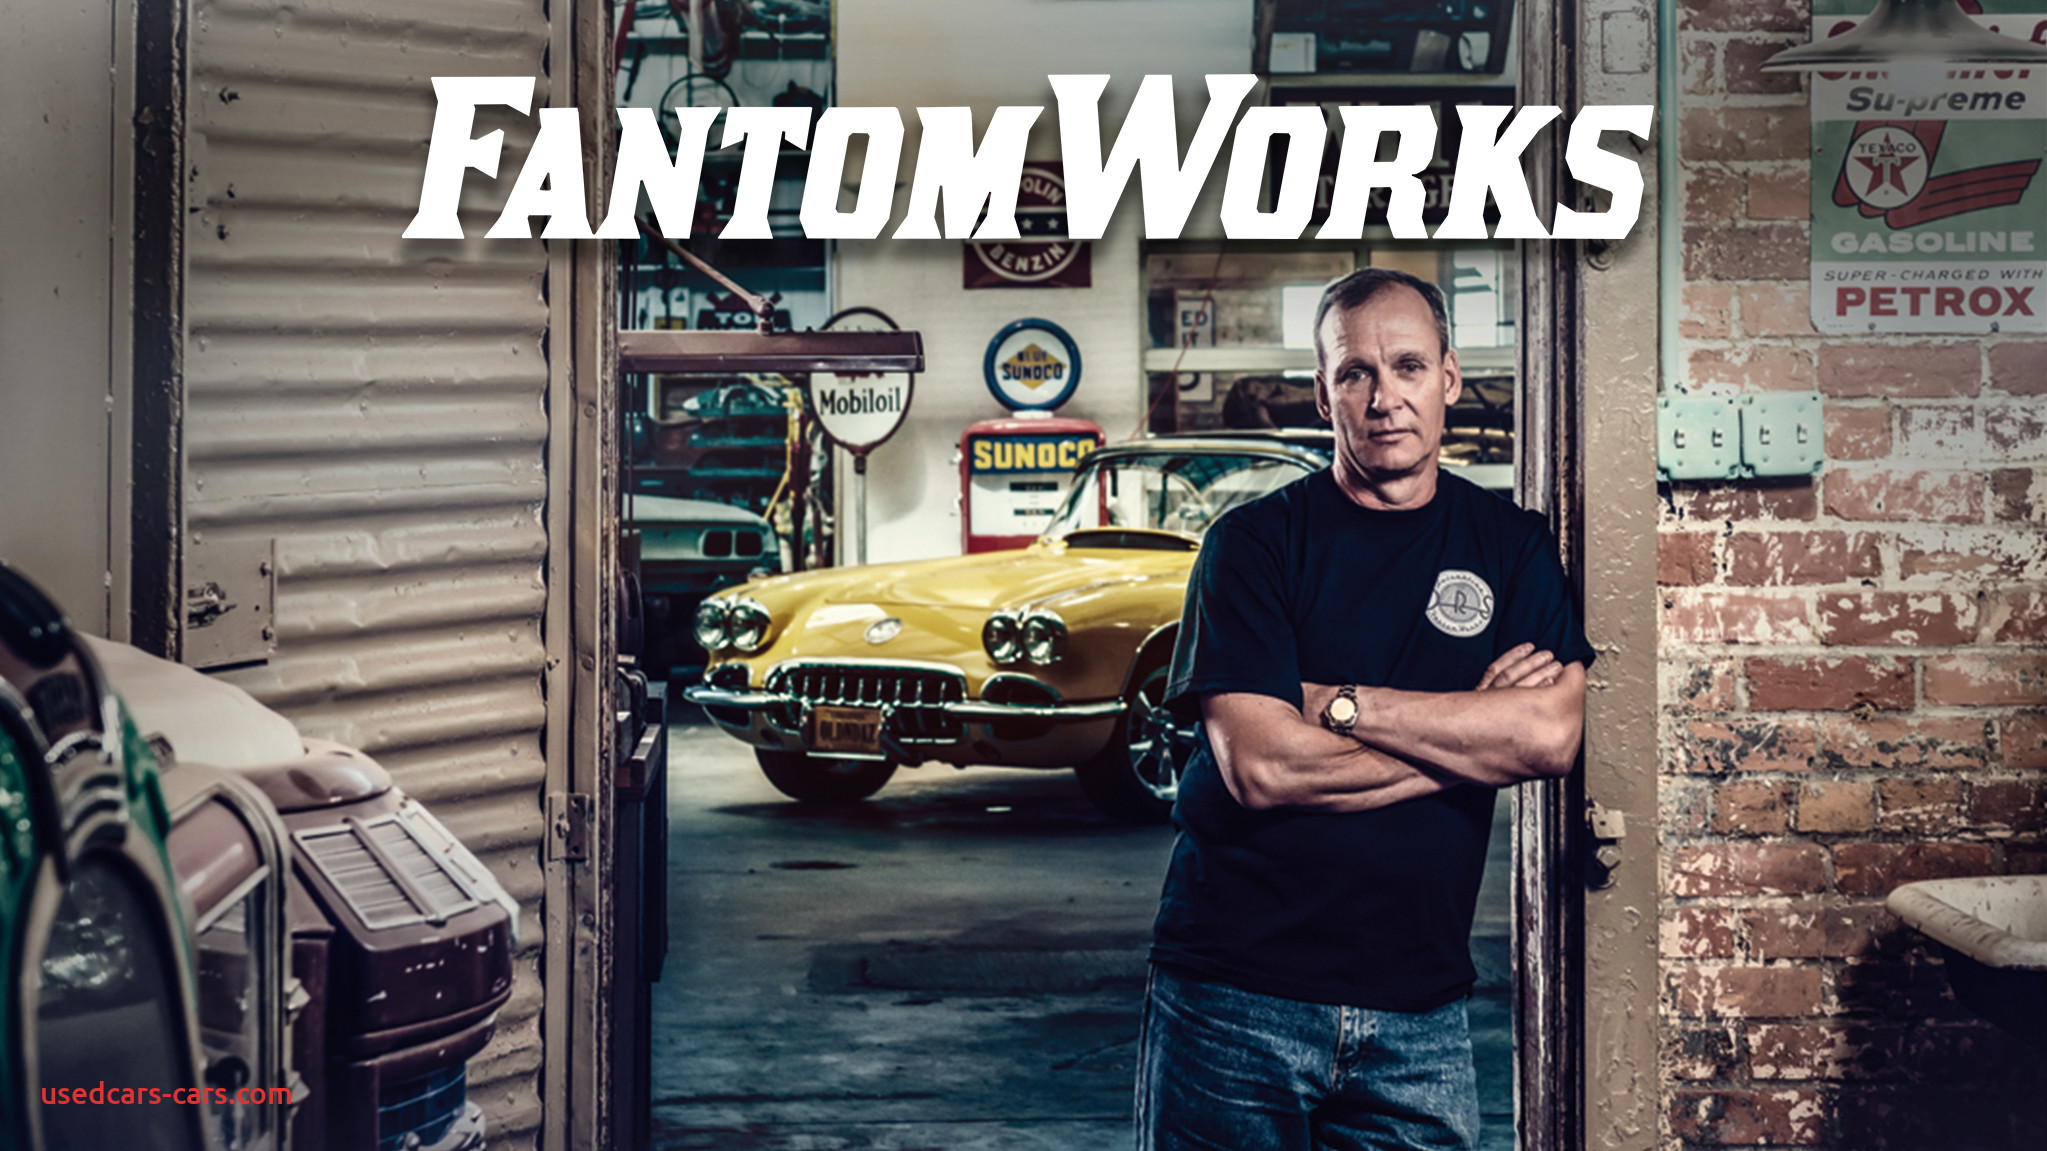 Fantom Works Beautiful Fantomworks